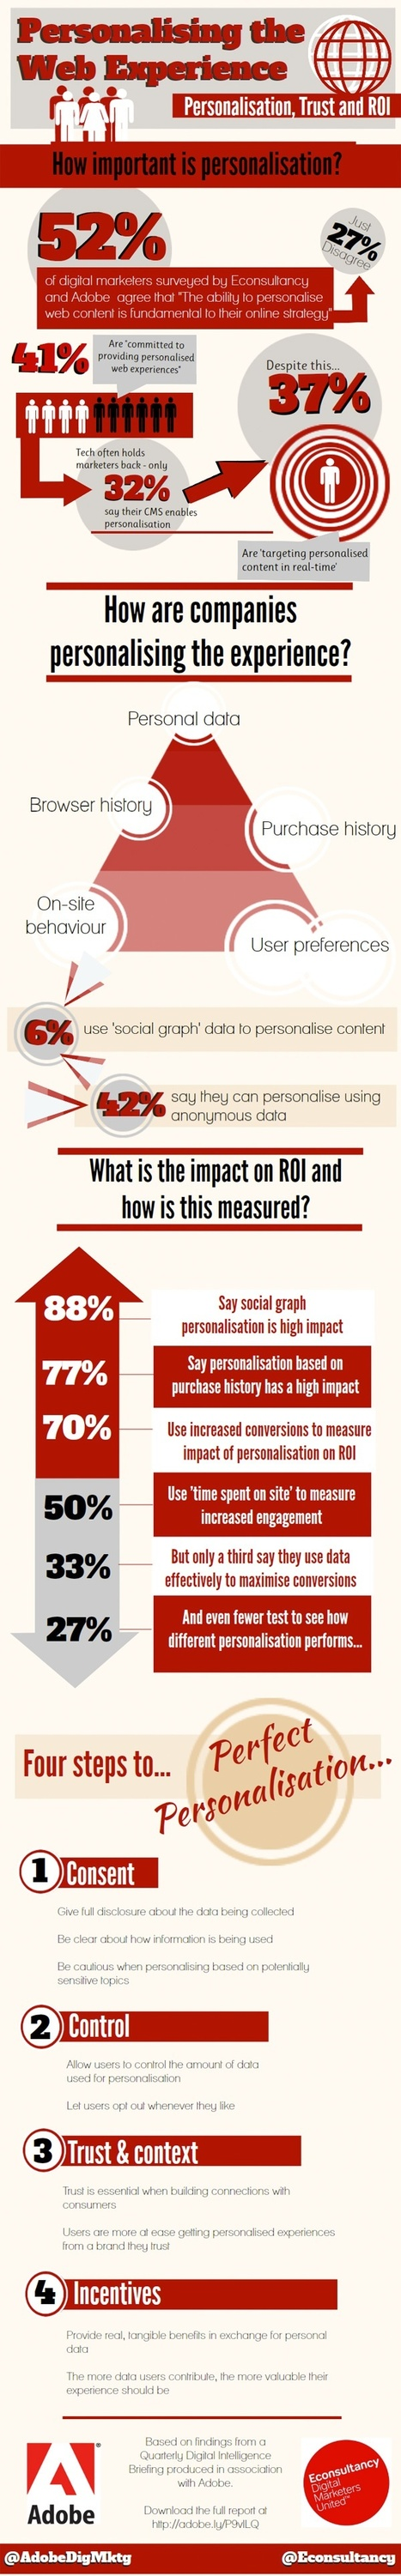 How Important Is Web Personalization? #Infographic | Digital Brand Marketing | Scoop.it